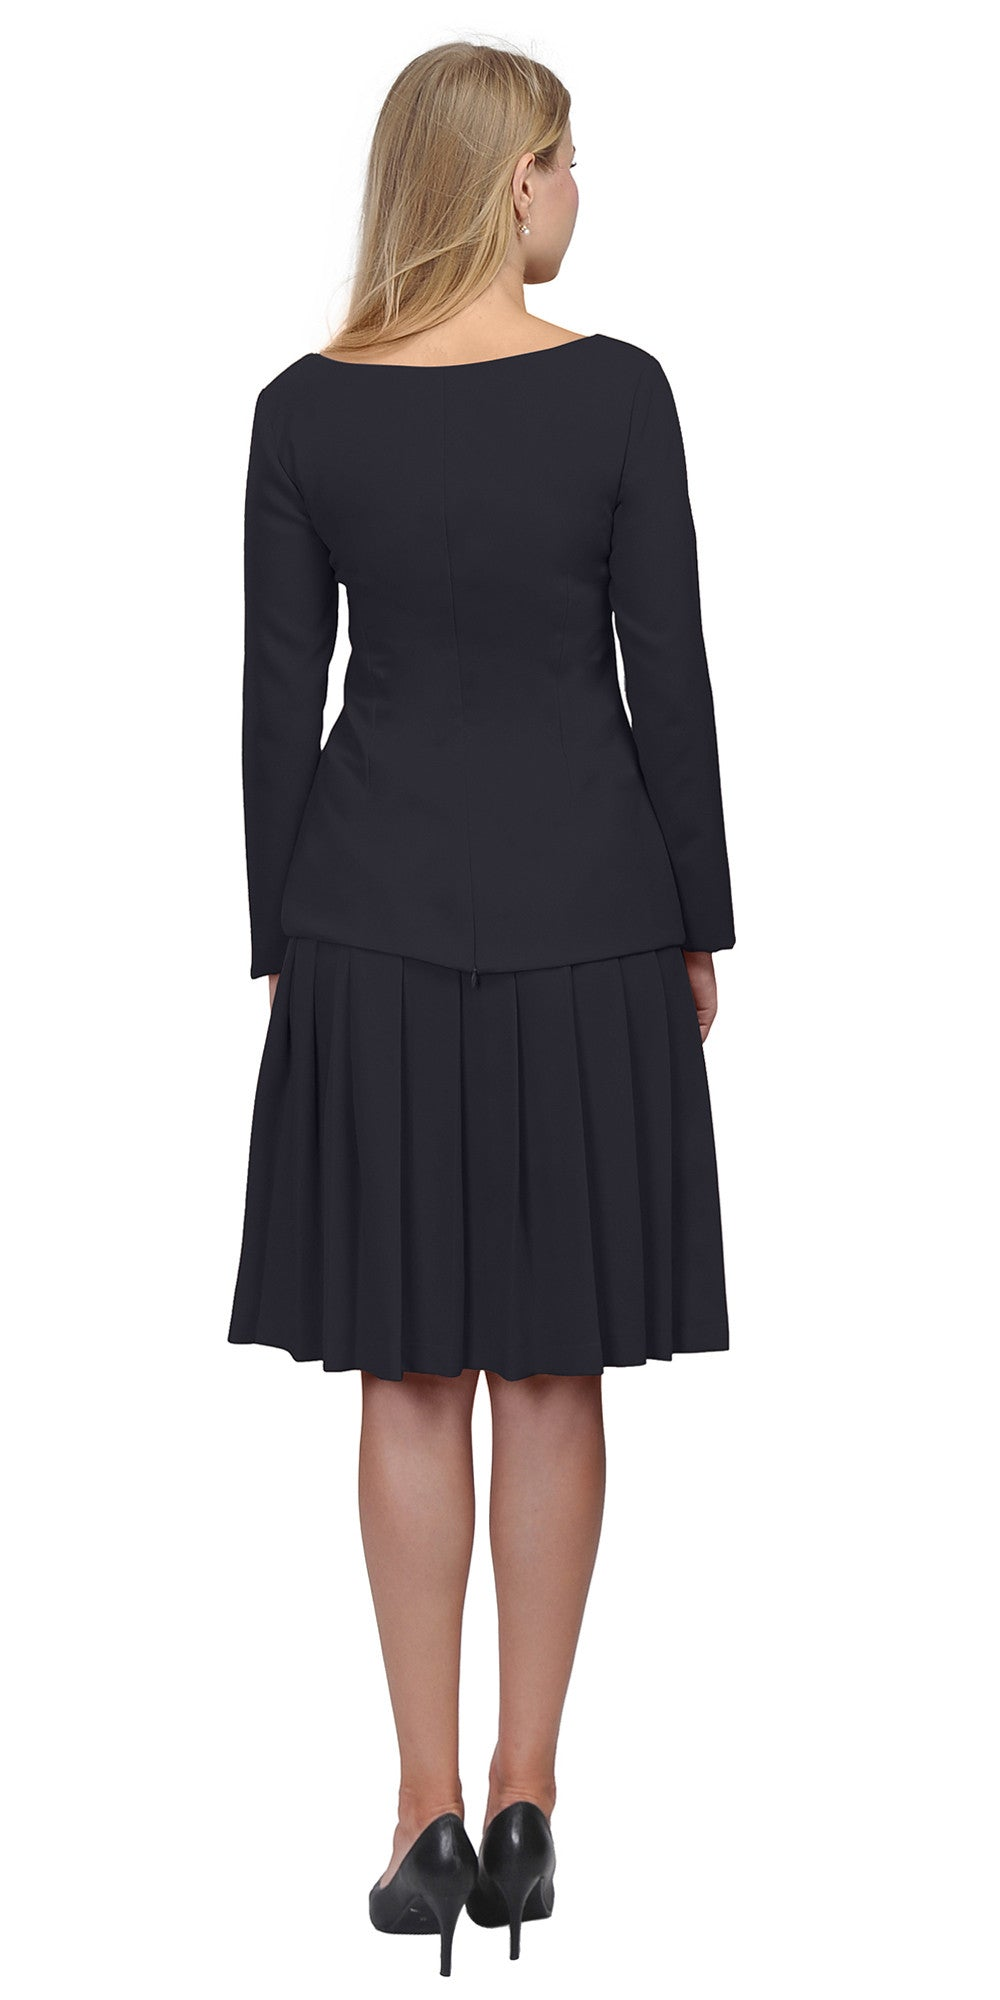 Womens Classy Skirt suit set designer Church Office Business Skirt Suits W Long Sleeves